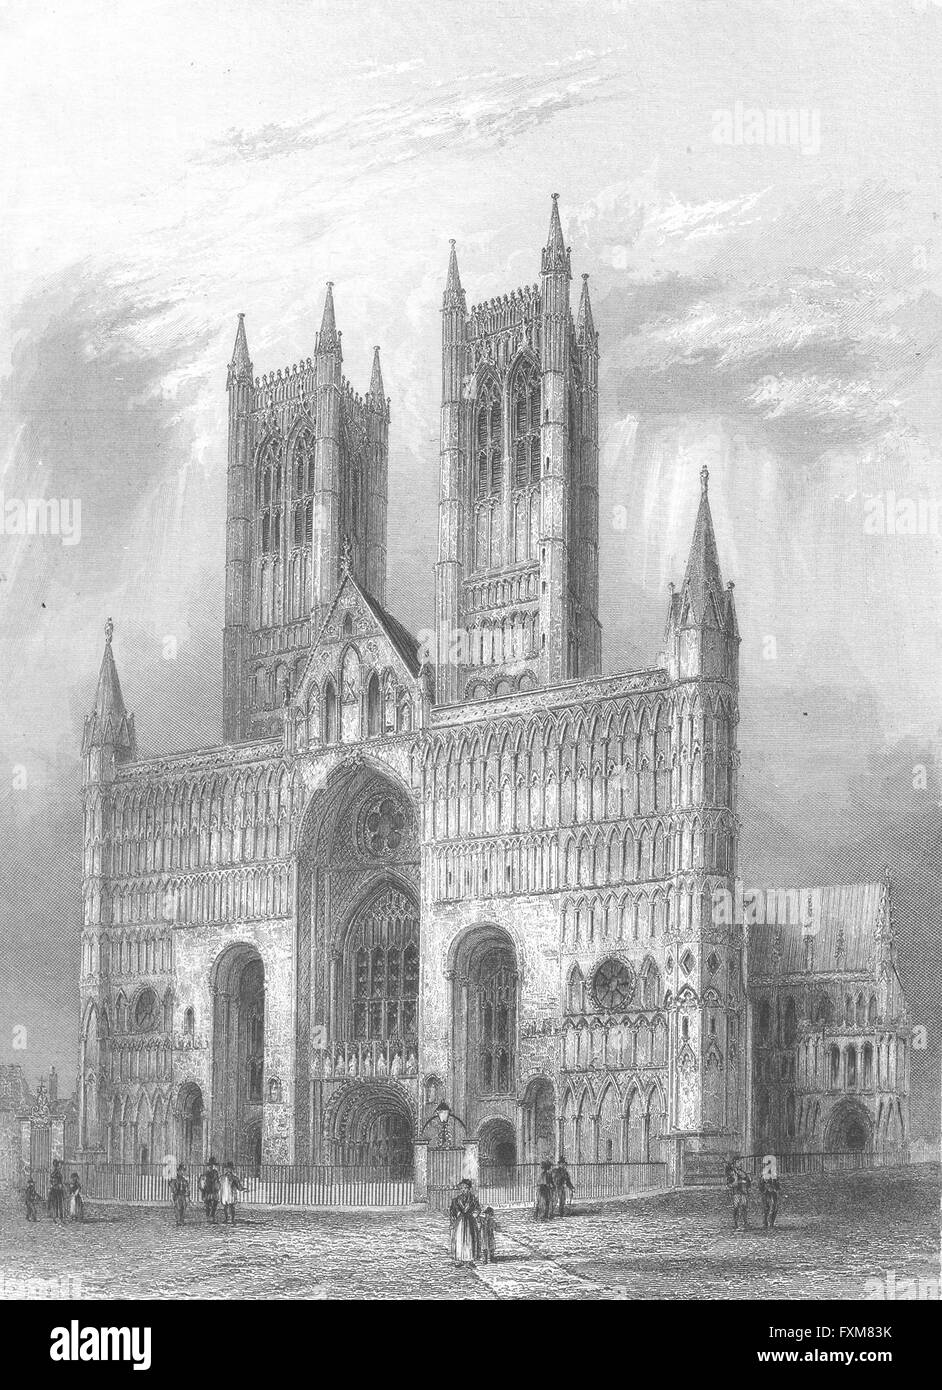 LINCS: Lincoln cathedral, antique print 1836 - Stock Image